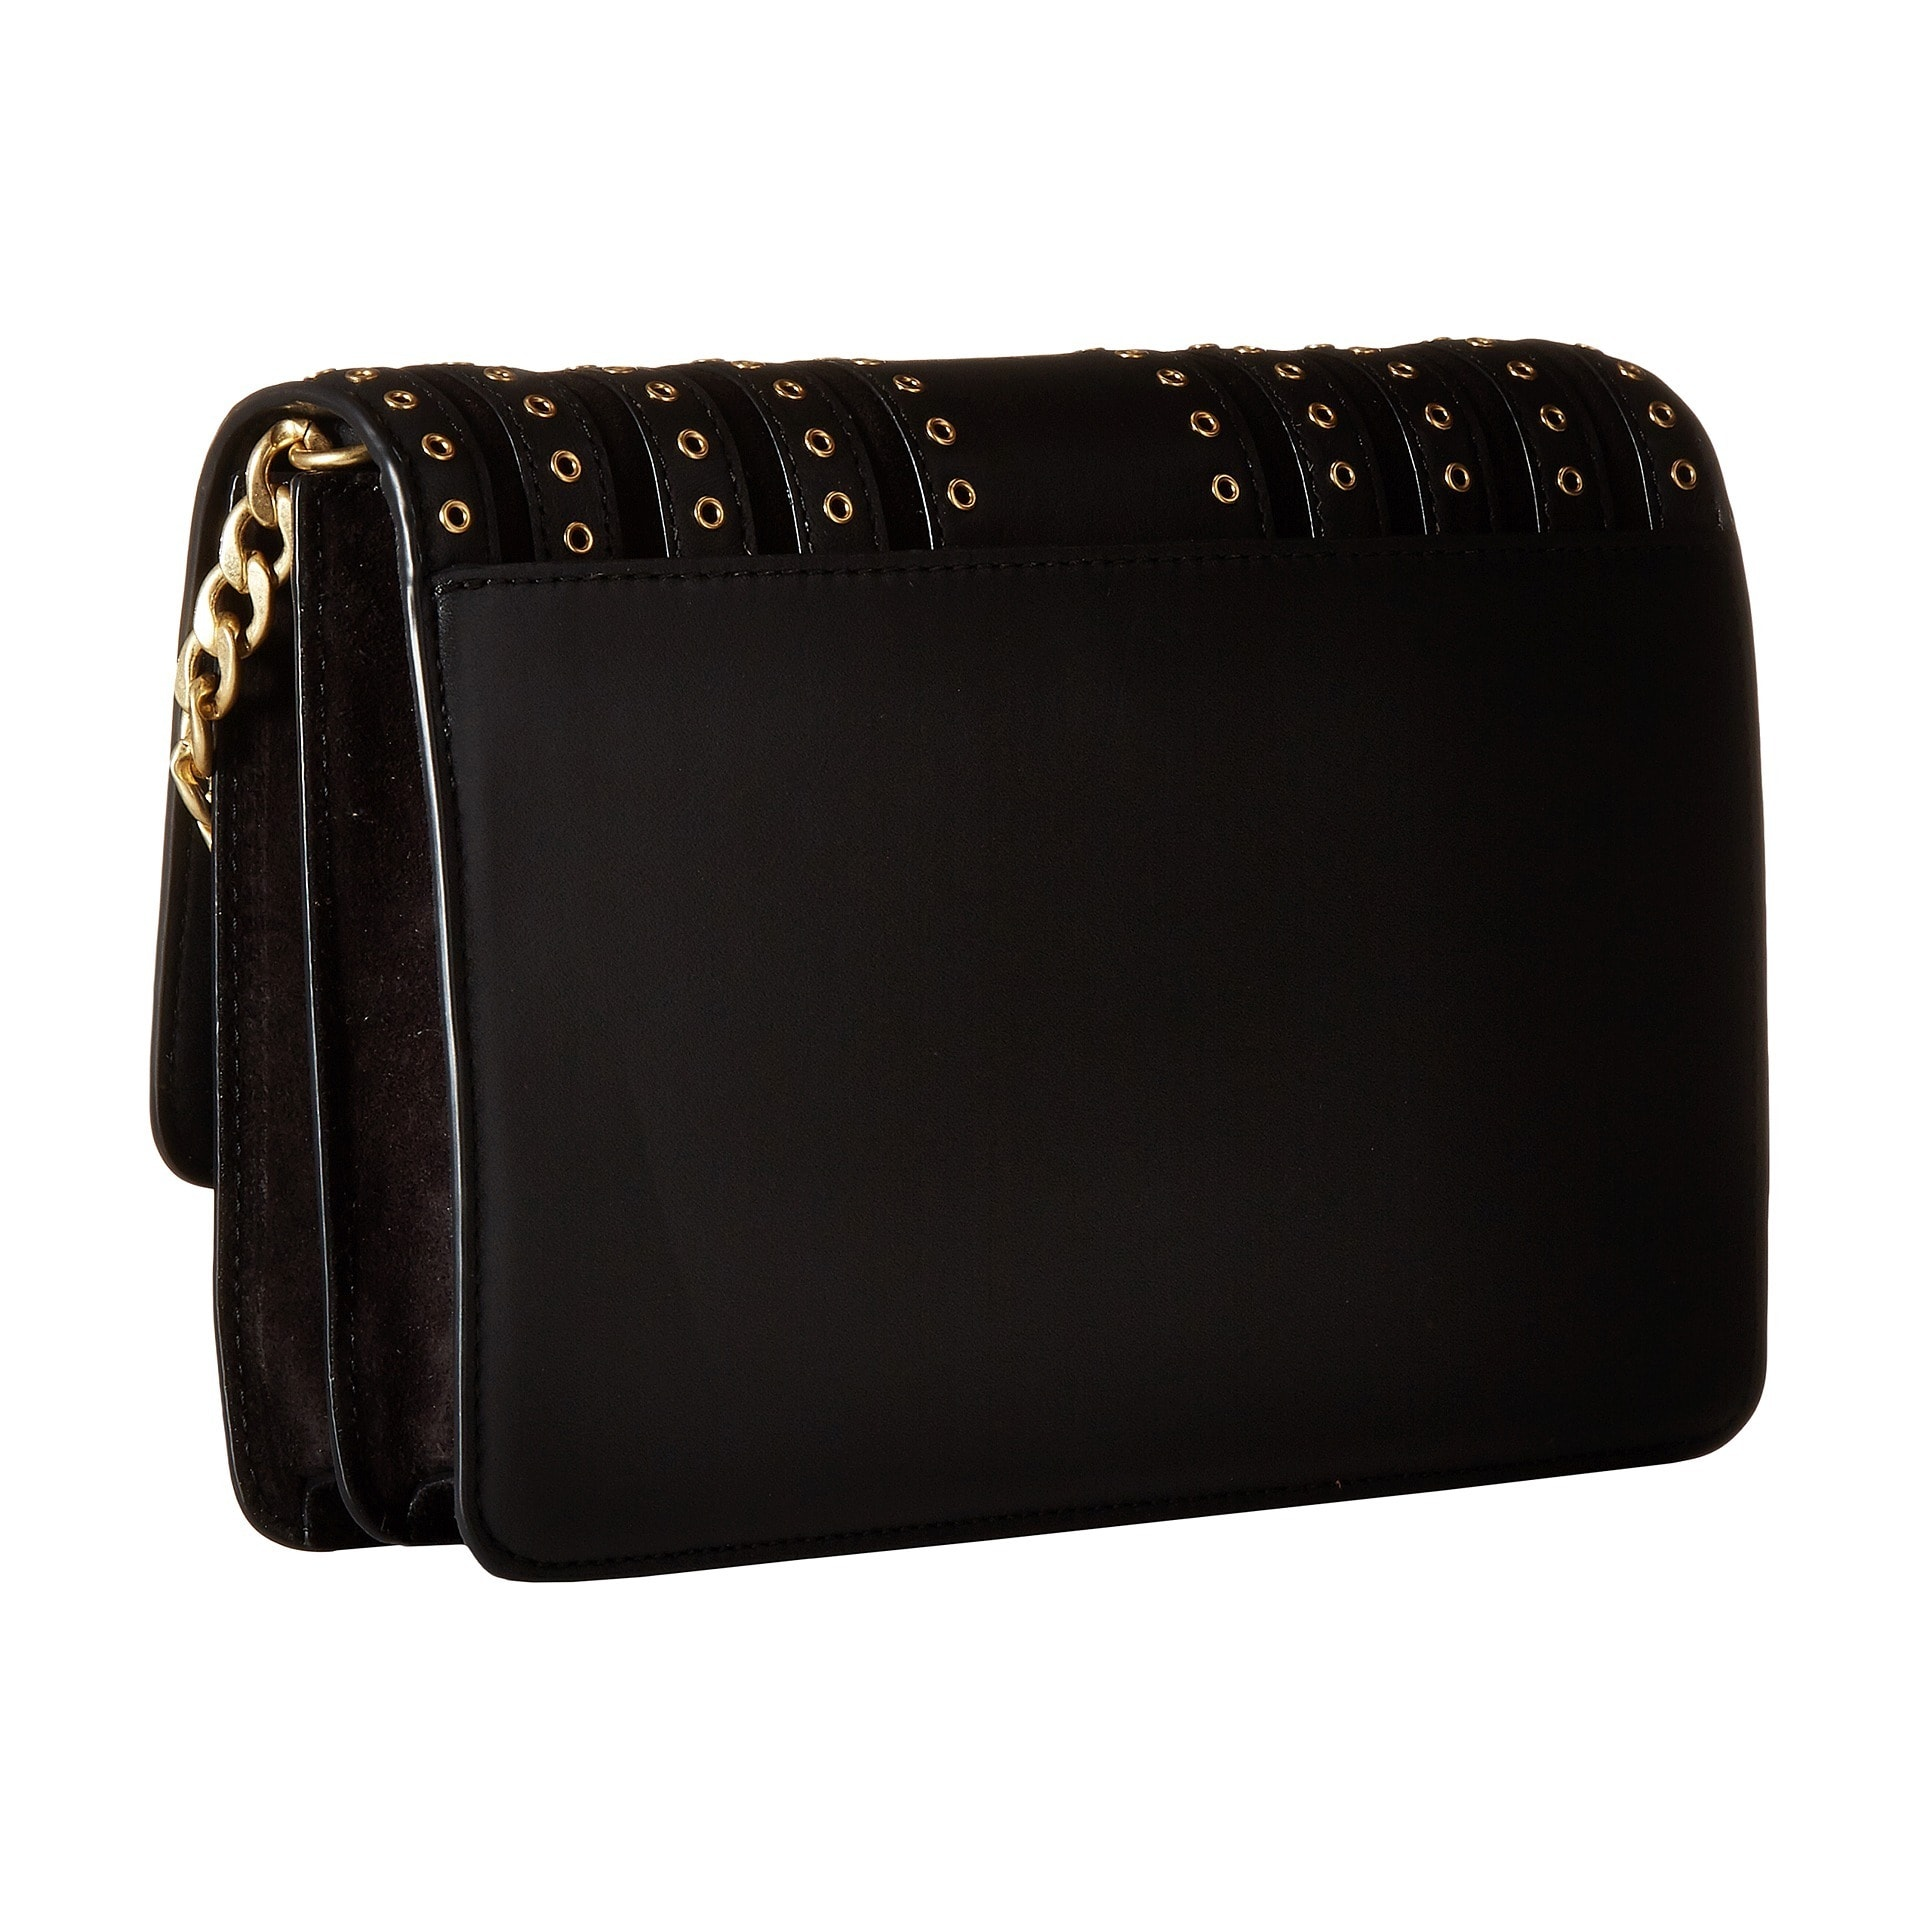 af8094cca2dc65 Shop Michael Kors Brooklyn Black Large Grommet-detailed Crossbody Clutch - Free  Shipping Today - Overstock - 13344345